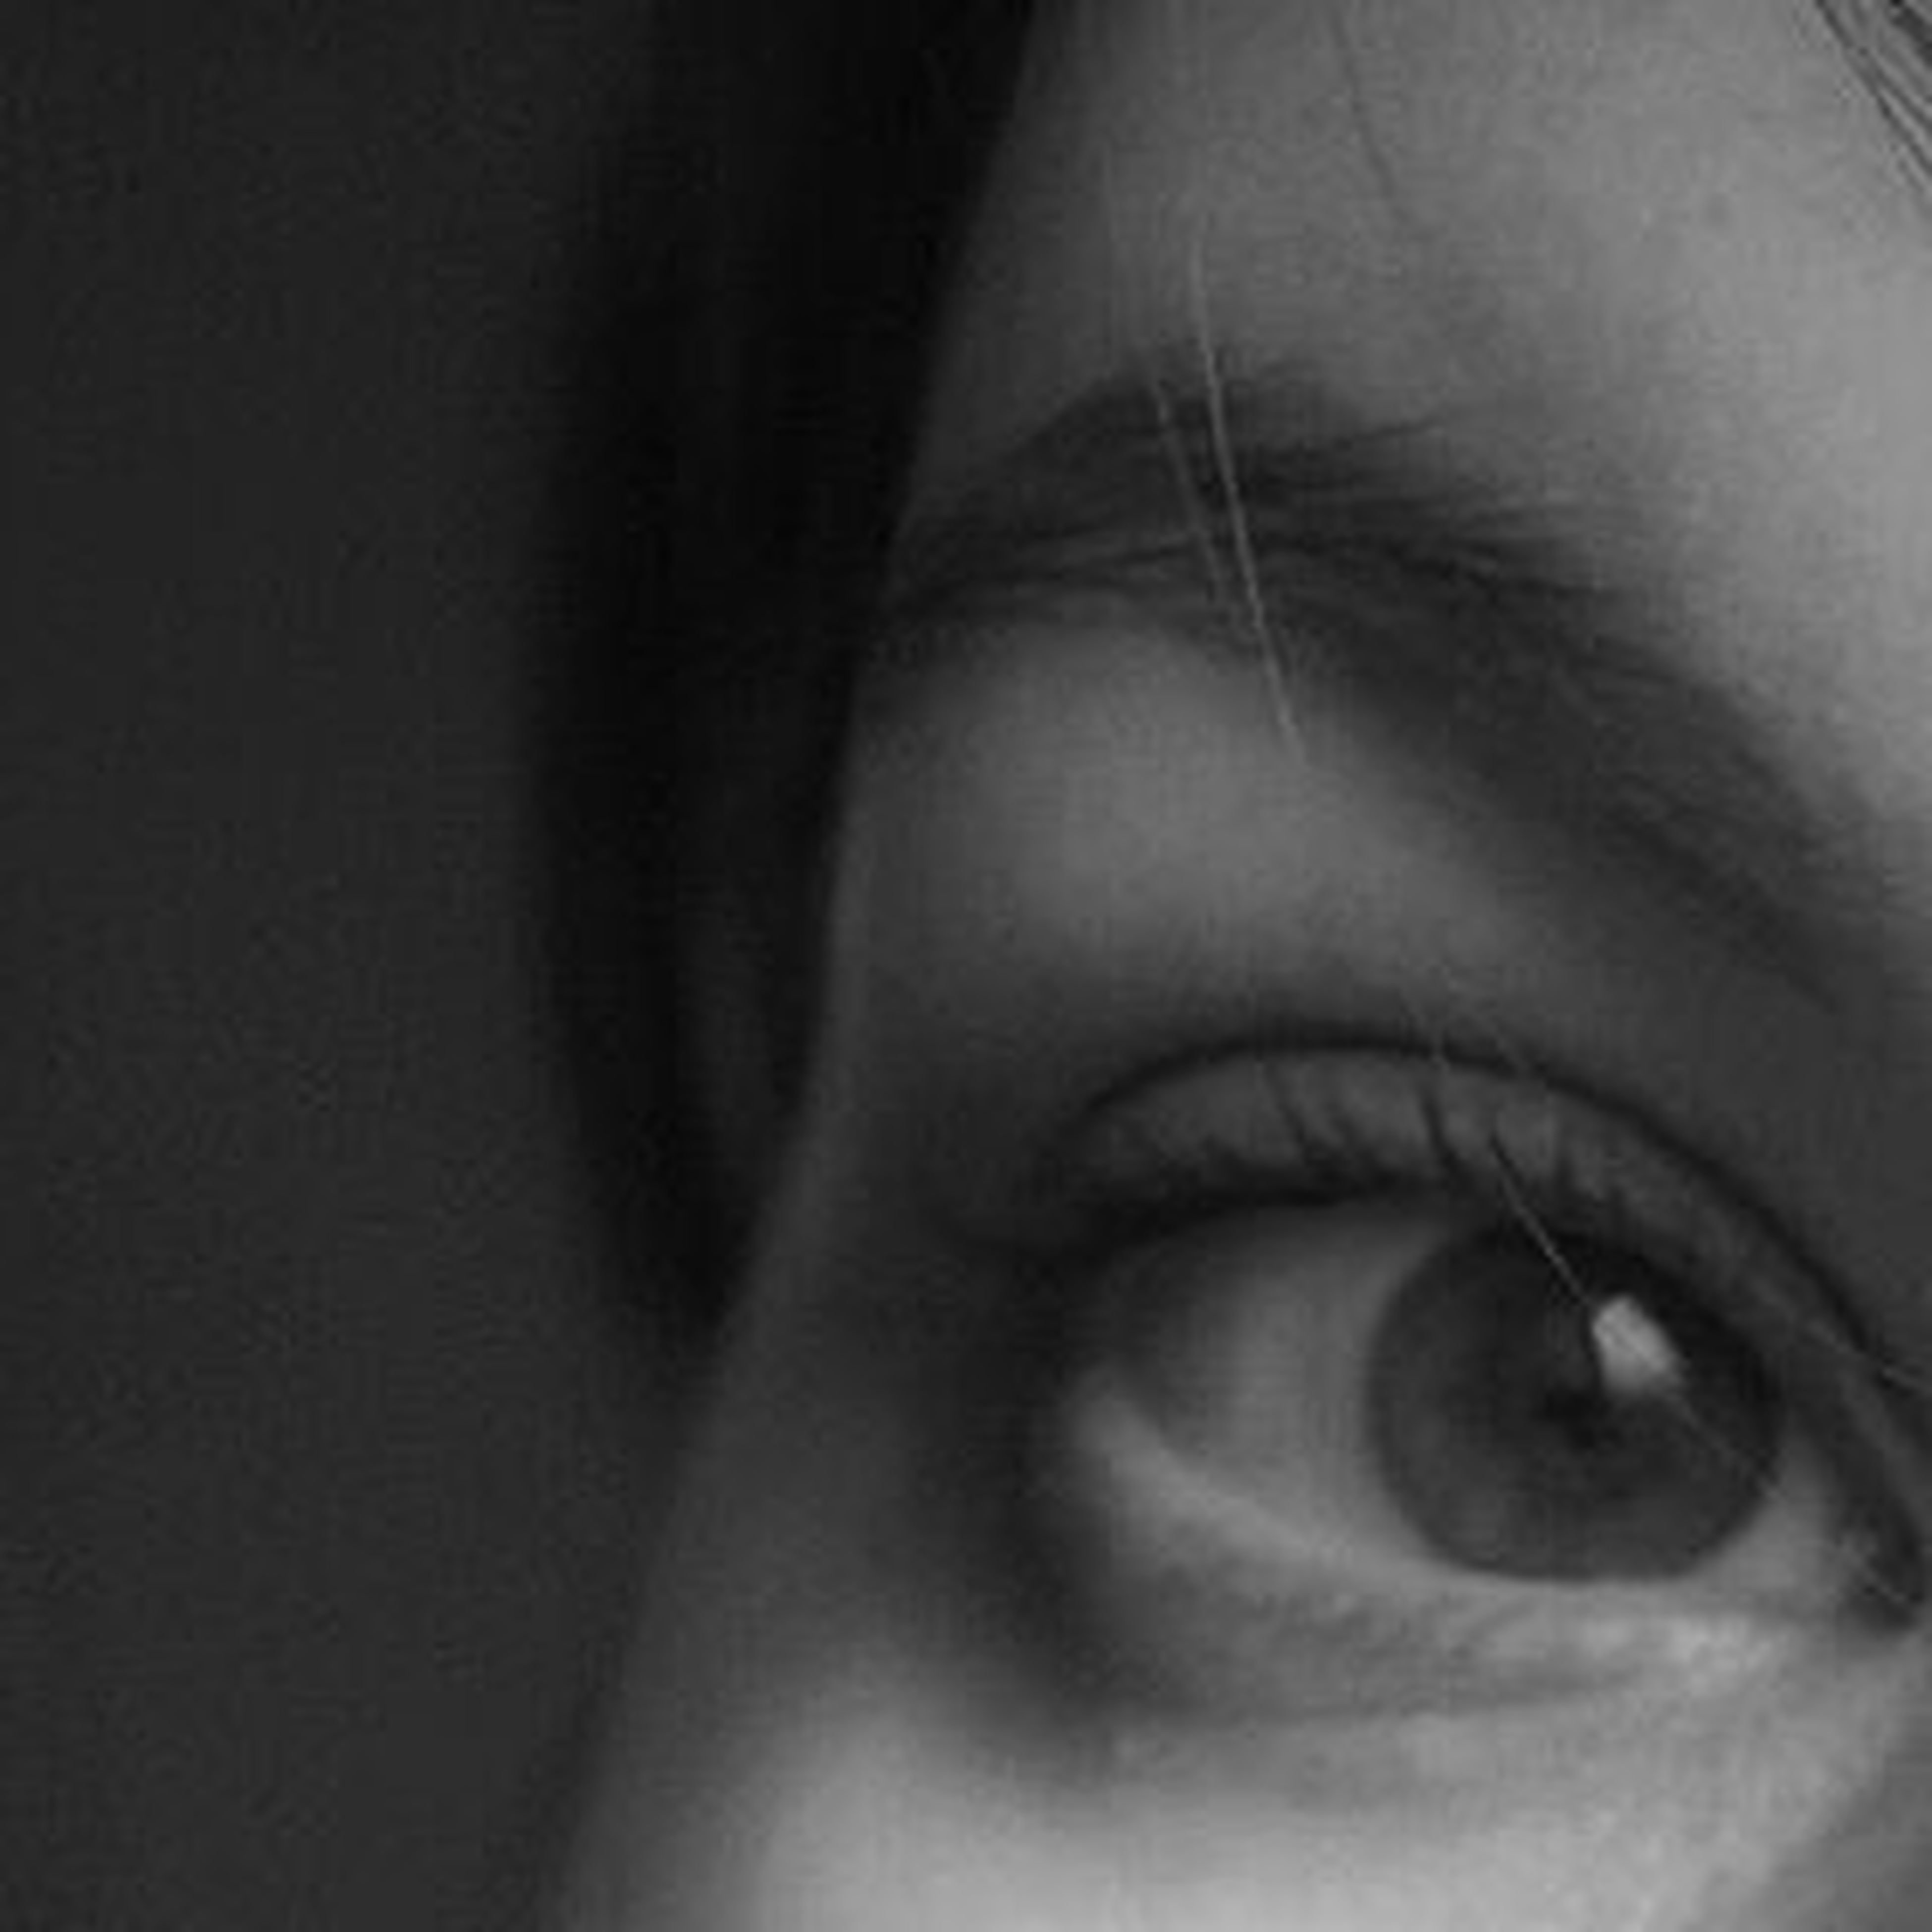 close-up, headshot, lifestyles, human face, human eye, young adult, human skin, indoors, part of, person, young women, looking at camera, eyelash, portrait, contemplation, serious